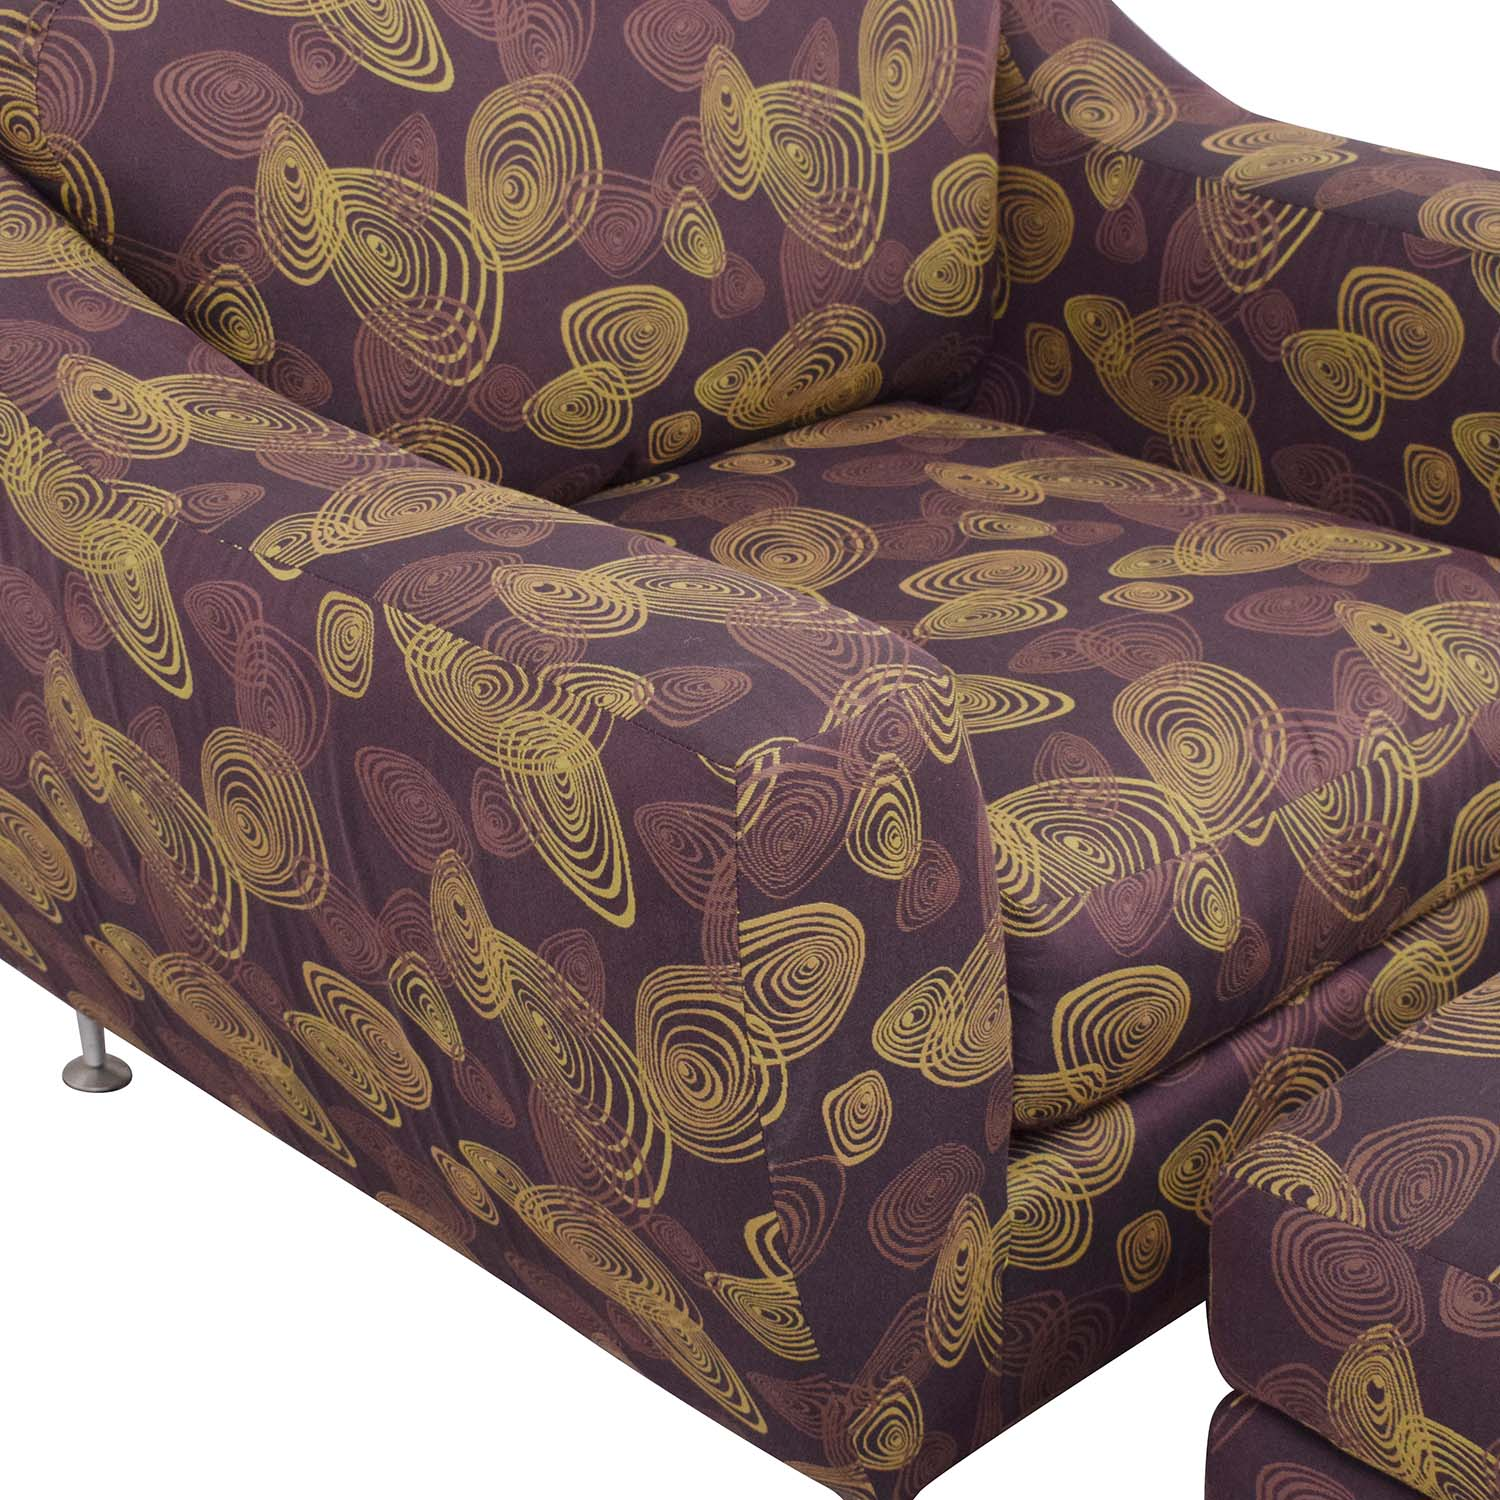 Carter Furniture Carter Accent Chair and Ottoman Accent Chairs